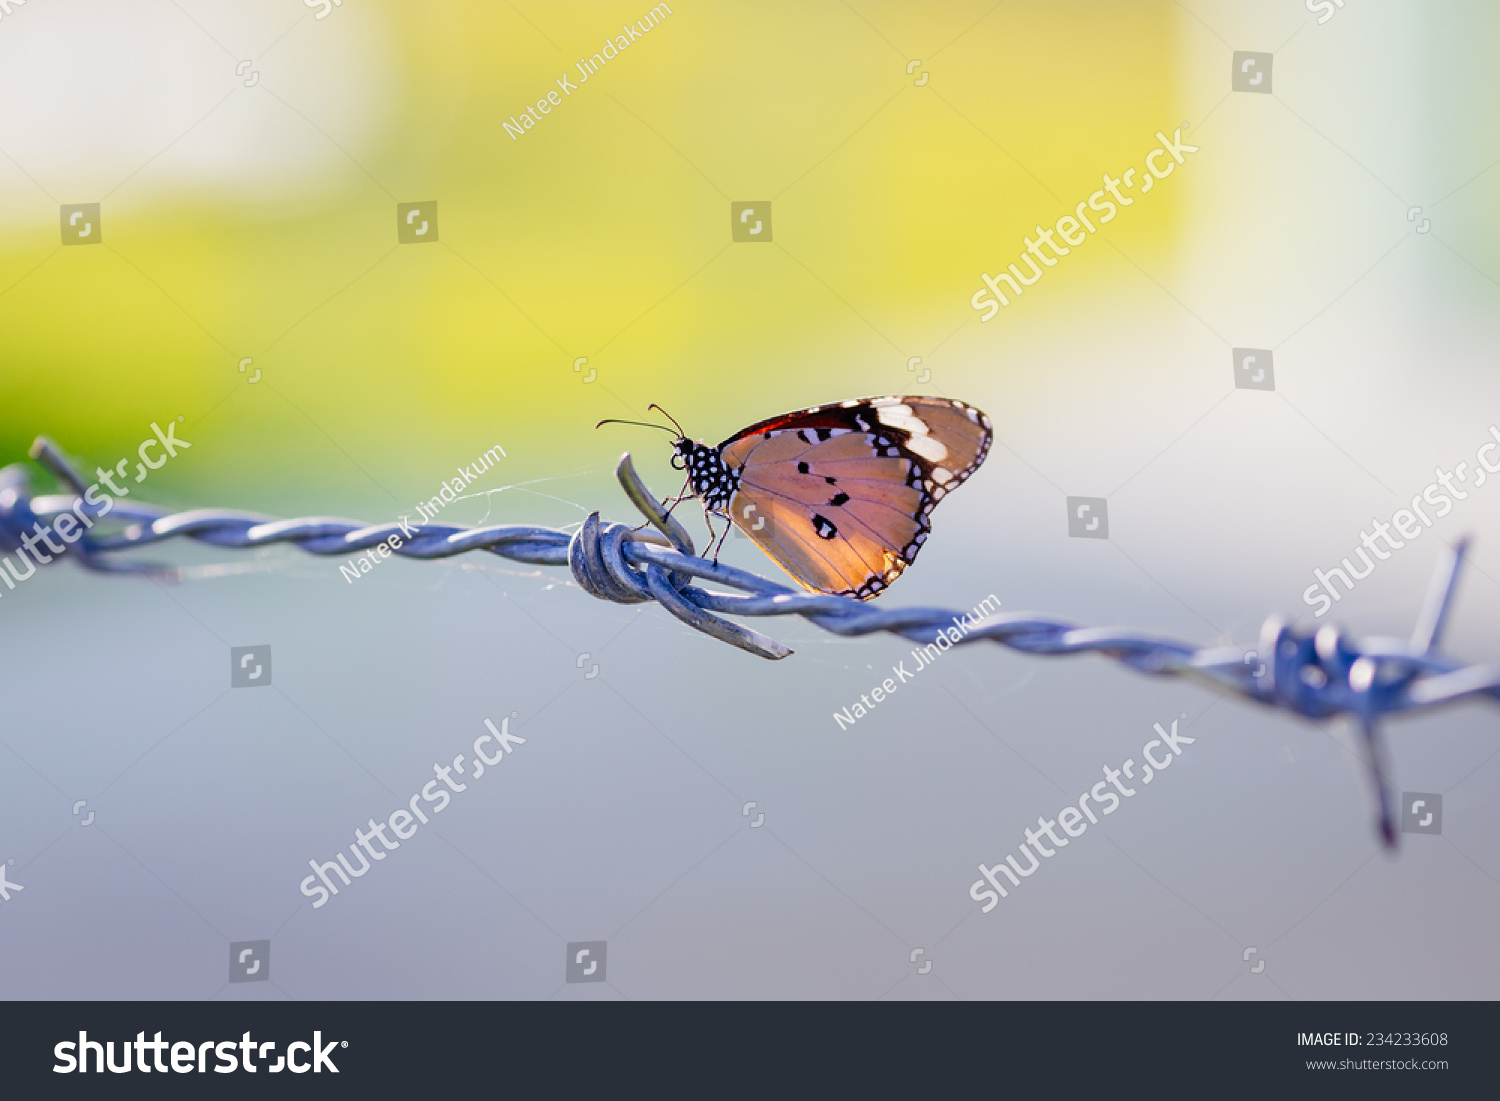 Butterfly on barbed wire symbol freedom stock photo 234233608 a butterfly on barbed wire a symbol of freedom in the prison buycottarizona